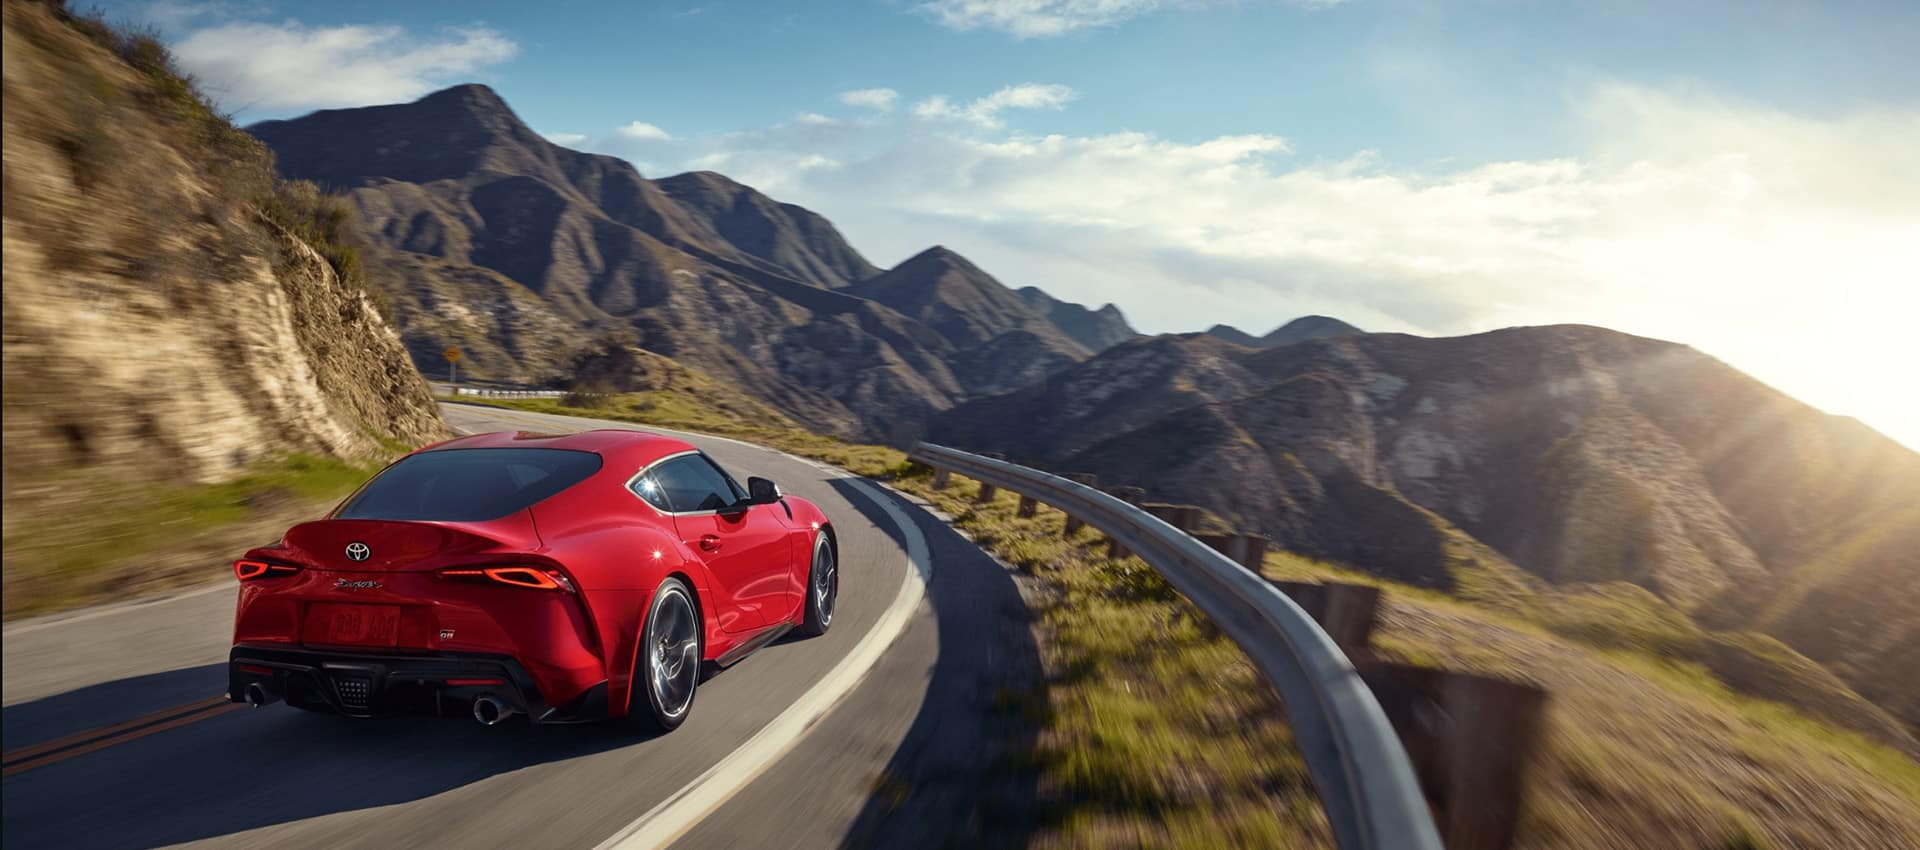 2021 Toyota GR Supra in St. Louis